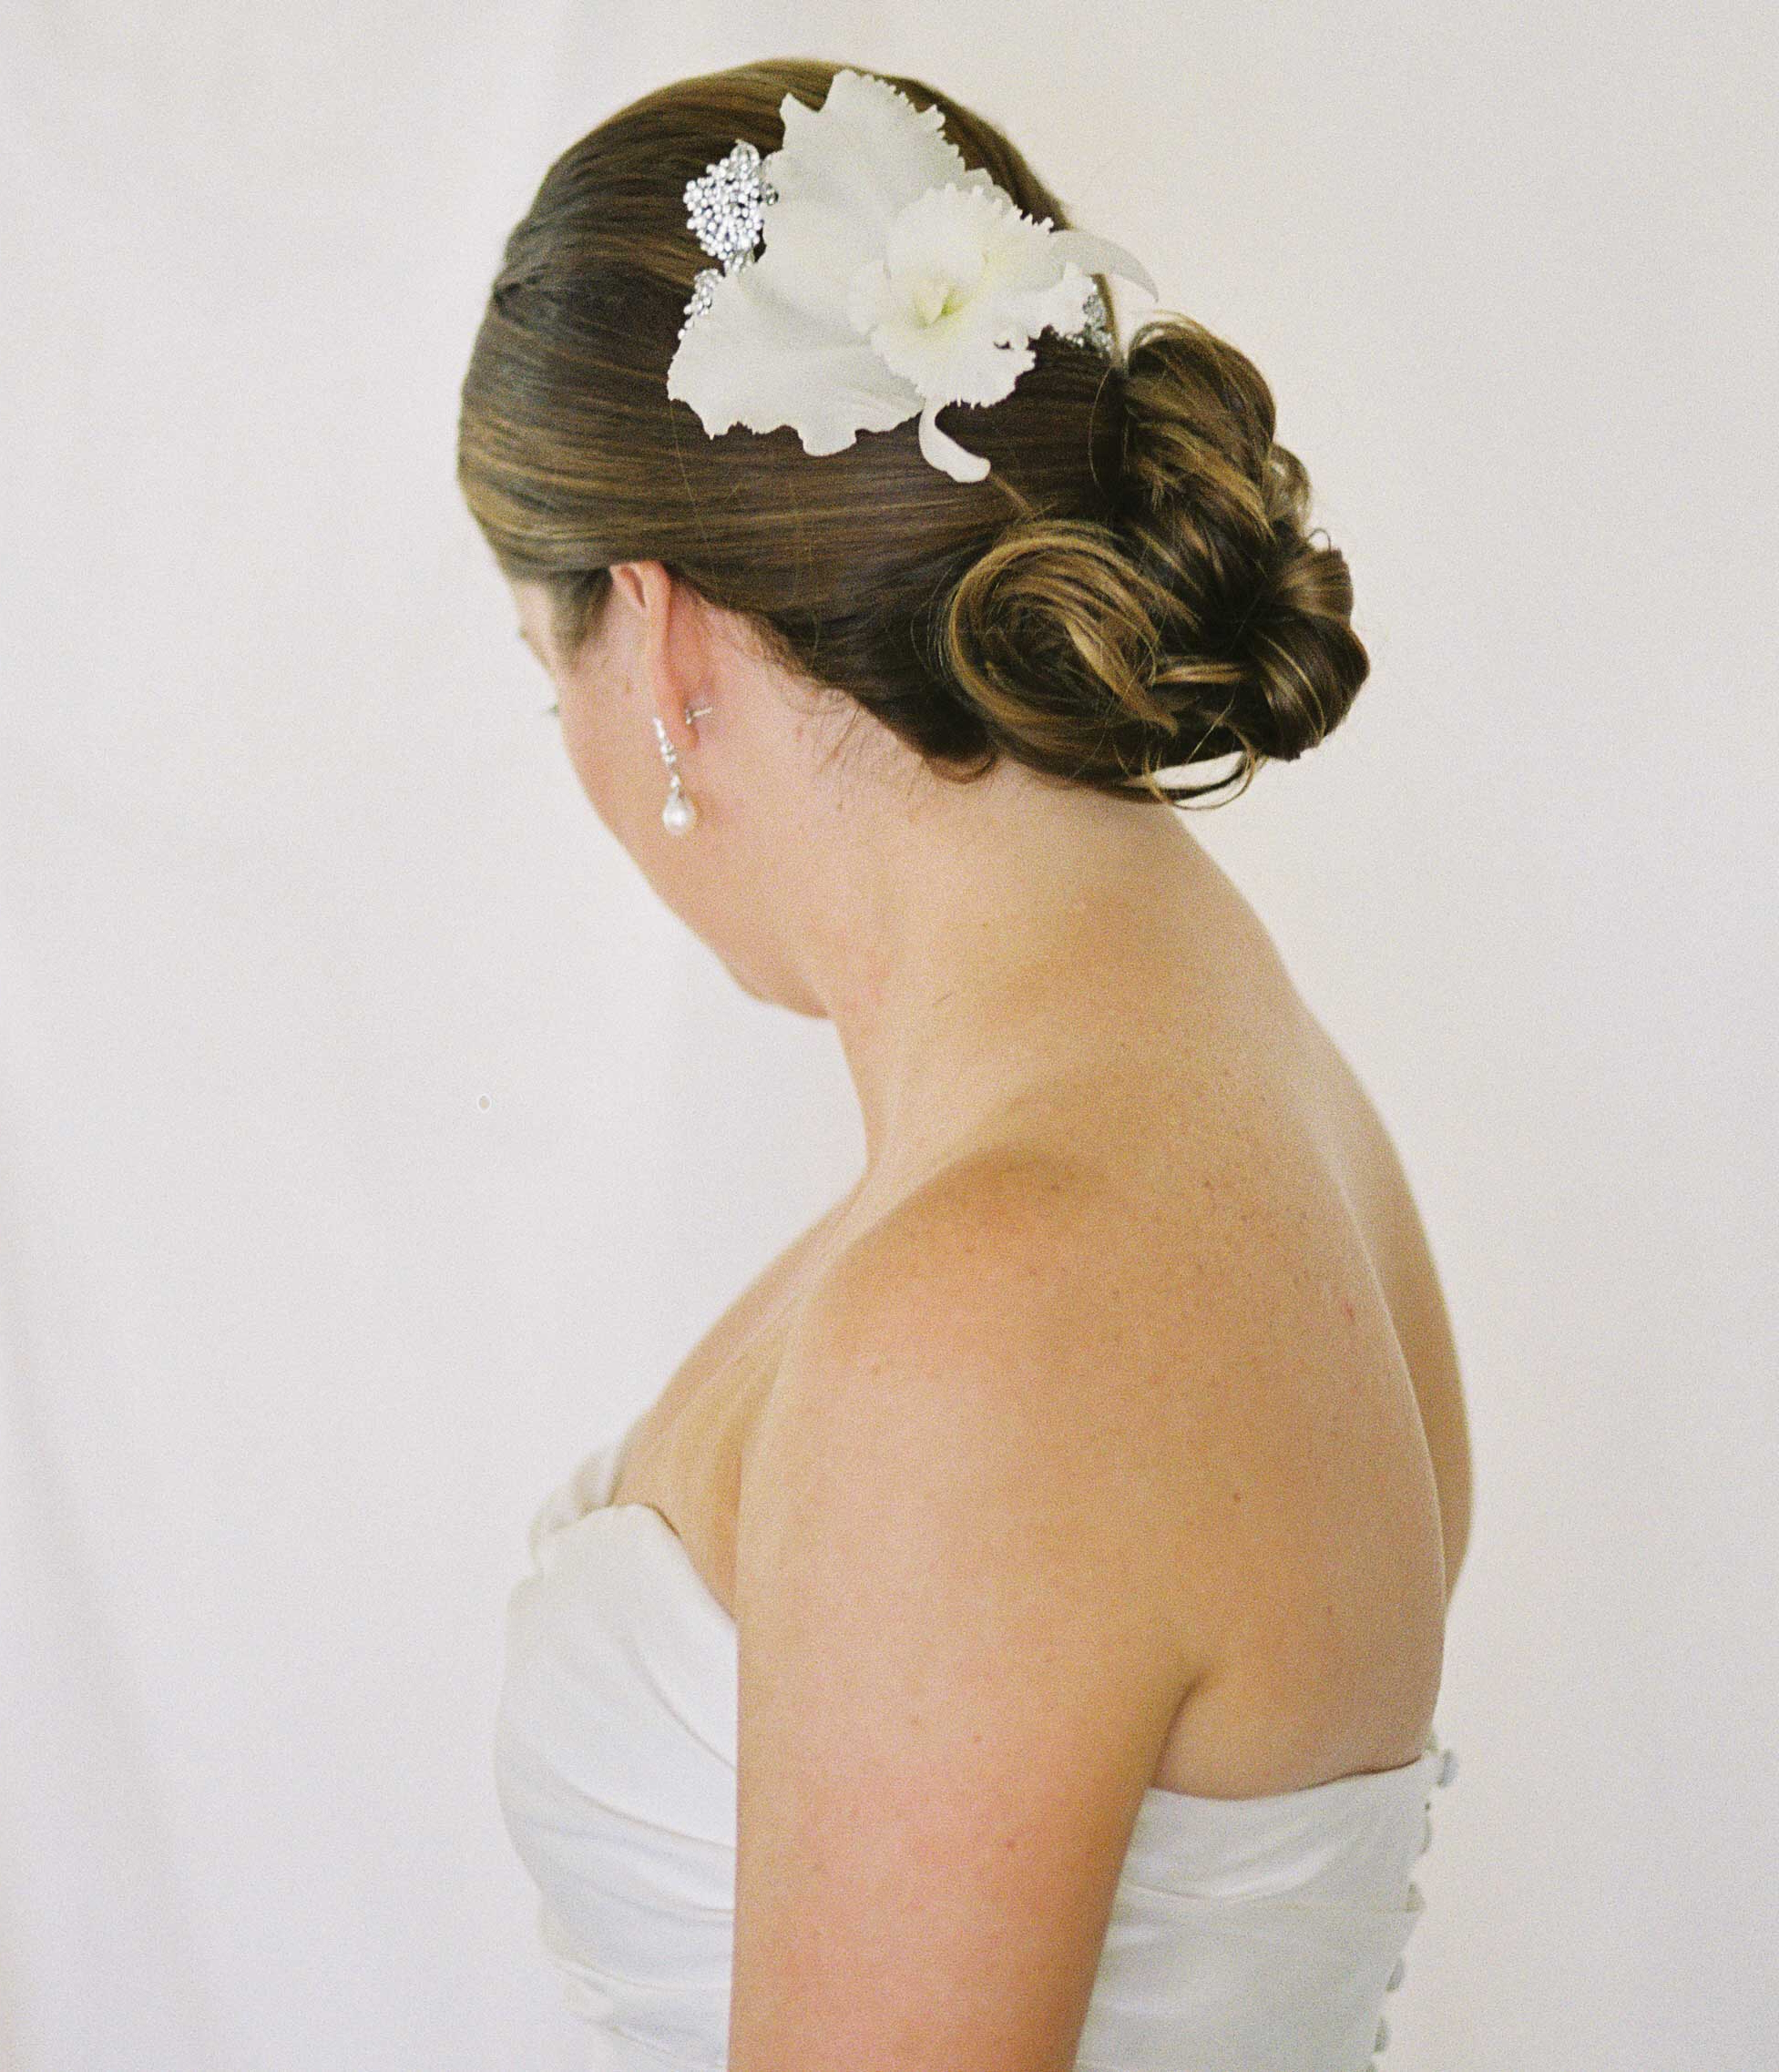 Hair Accessory Alternatives To Traditional Bridal Veils – Inside With Most Recently Released High Updos With Jeweled Headband For Brides (View 11 of 20)